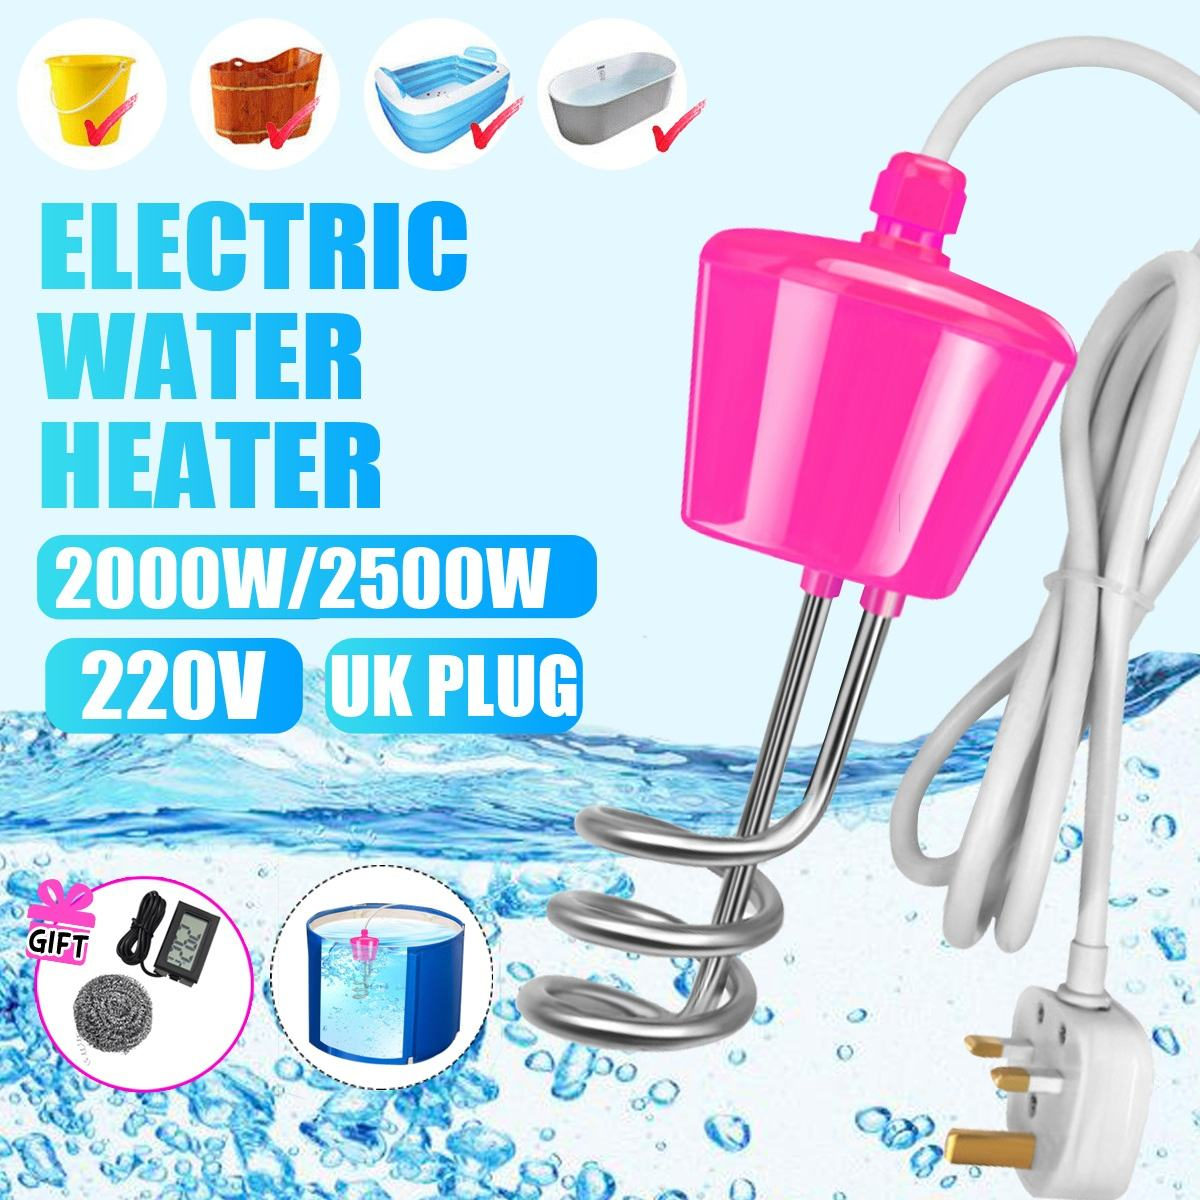 2500W Floating Electric Heater Boiler Water Heating Element Portable Immersion Suspension Bathroom Swimming Pool UK Plug